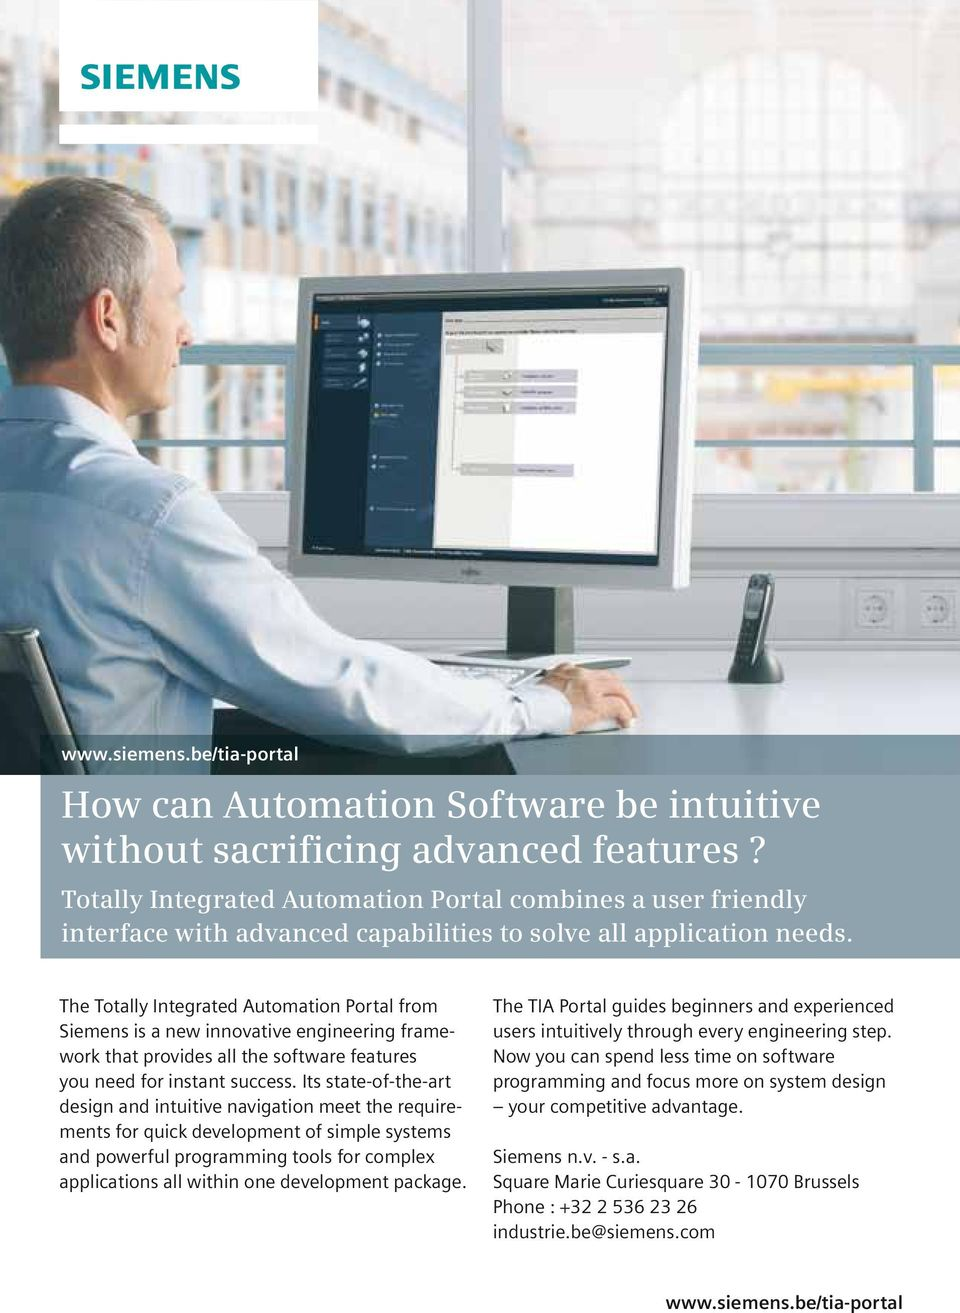 The Totally Integrated Automation Portal from Siemens is a new innovative engineering framework that provides all the software features you need for instant success.